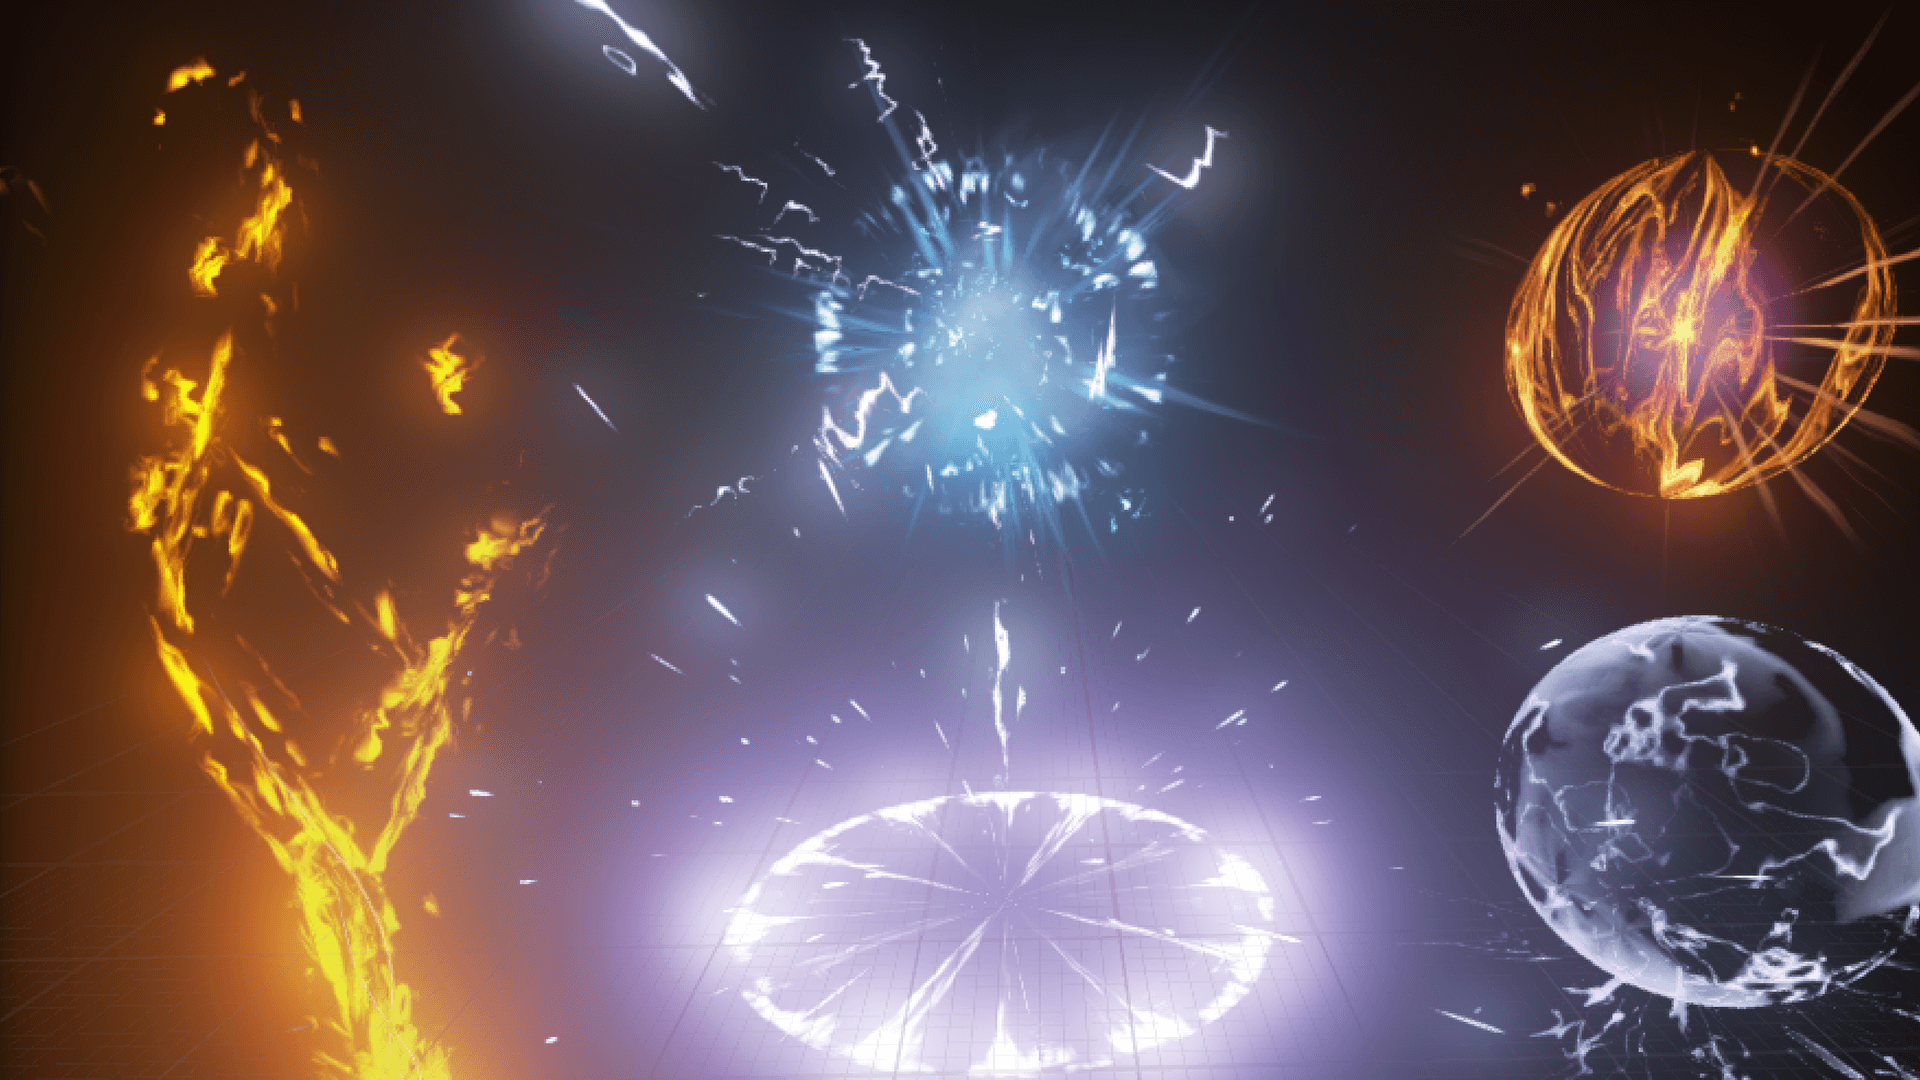 KY Magic FX 3 by Kakky